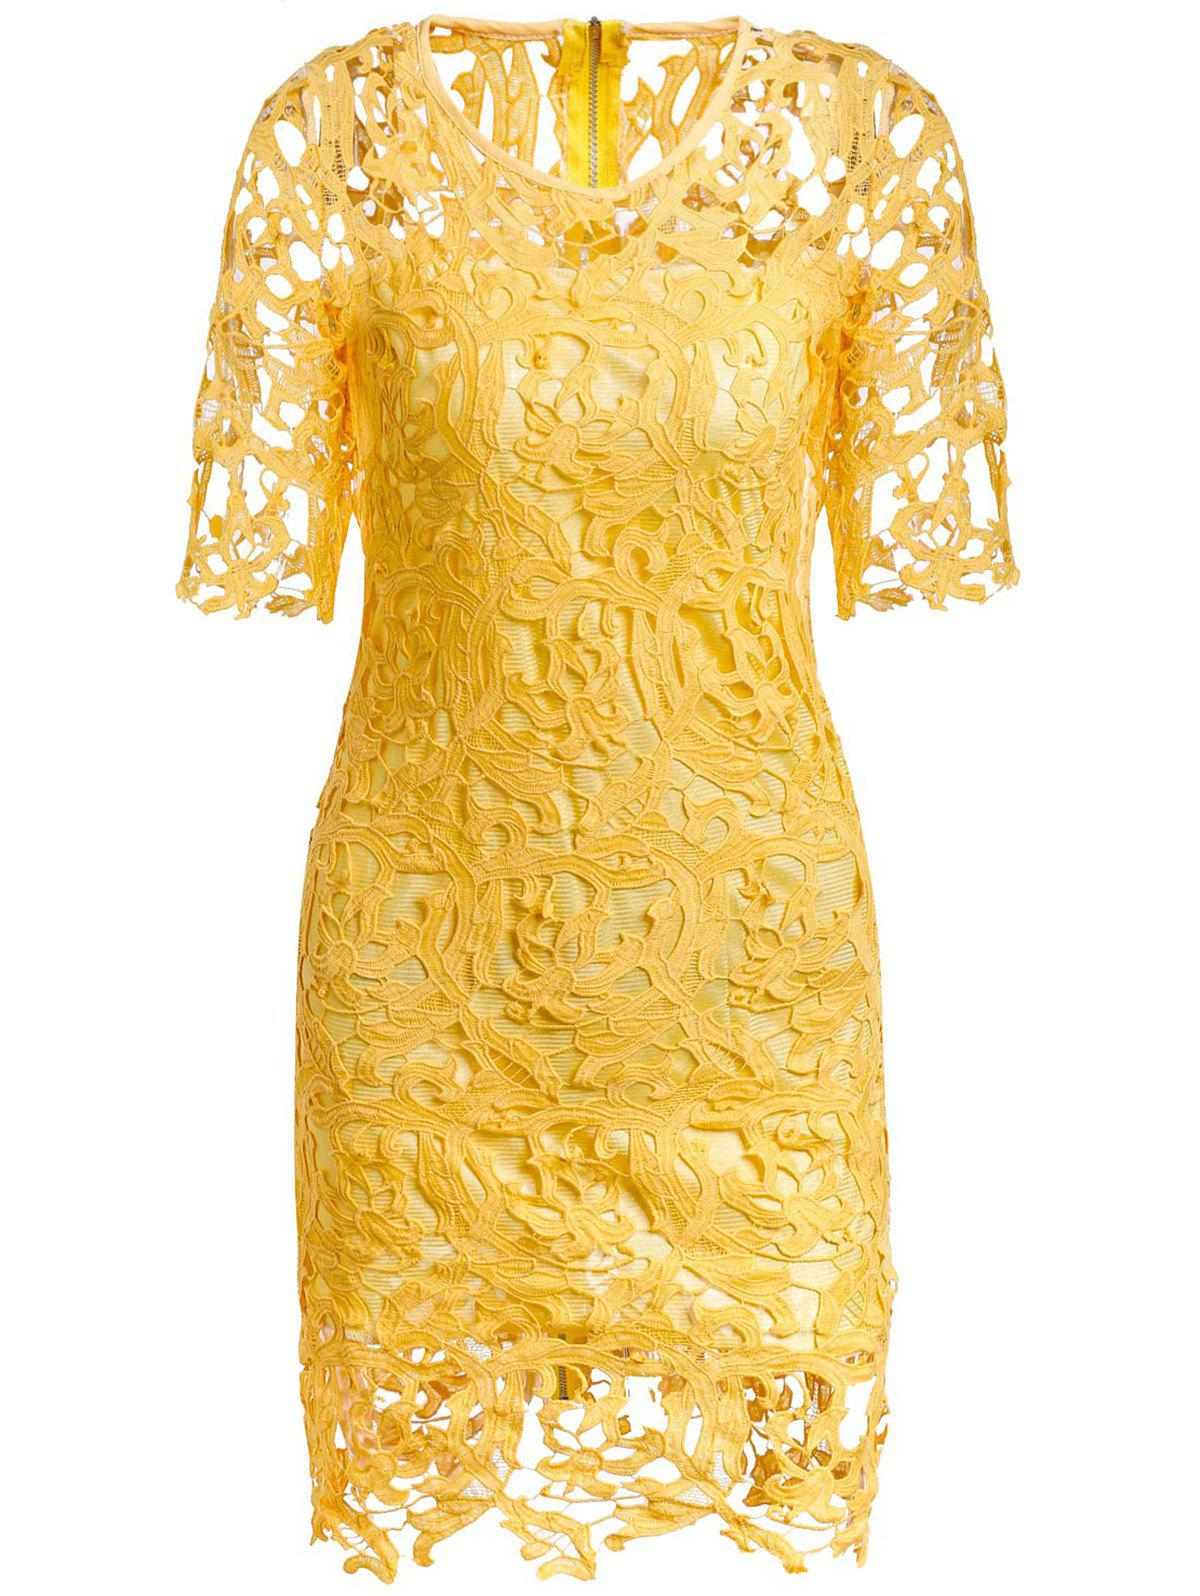 Round Neck 1/2 Sleeve Hollow Out Spliced Lace Women's Dress